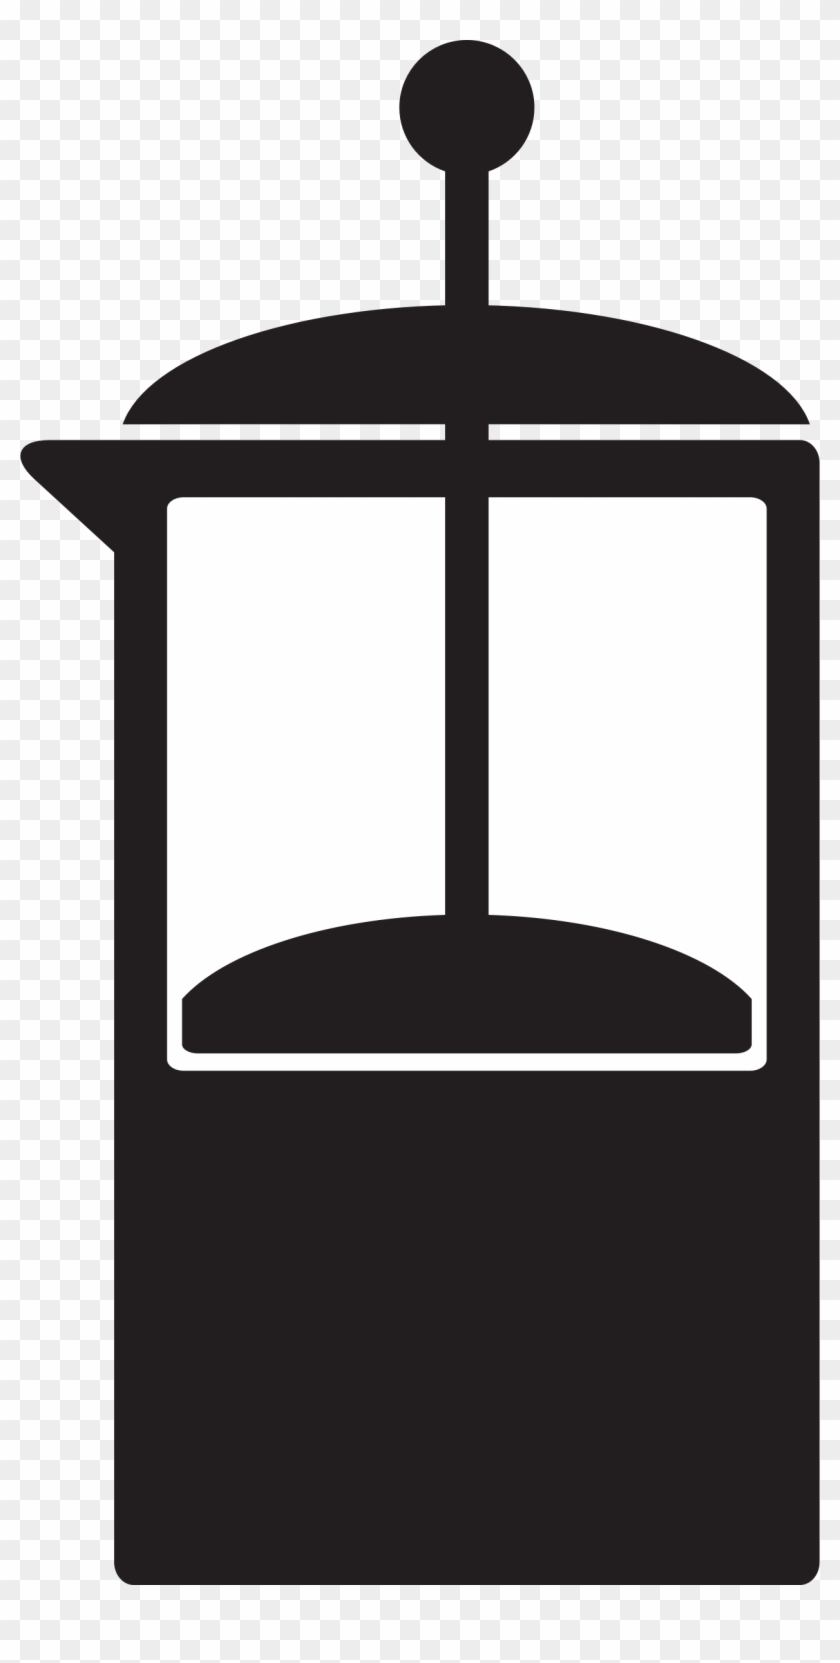 Coffee French Press - French Press Coffee Icon Png #195957